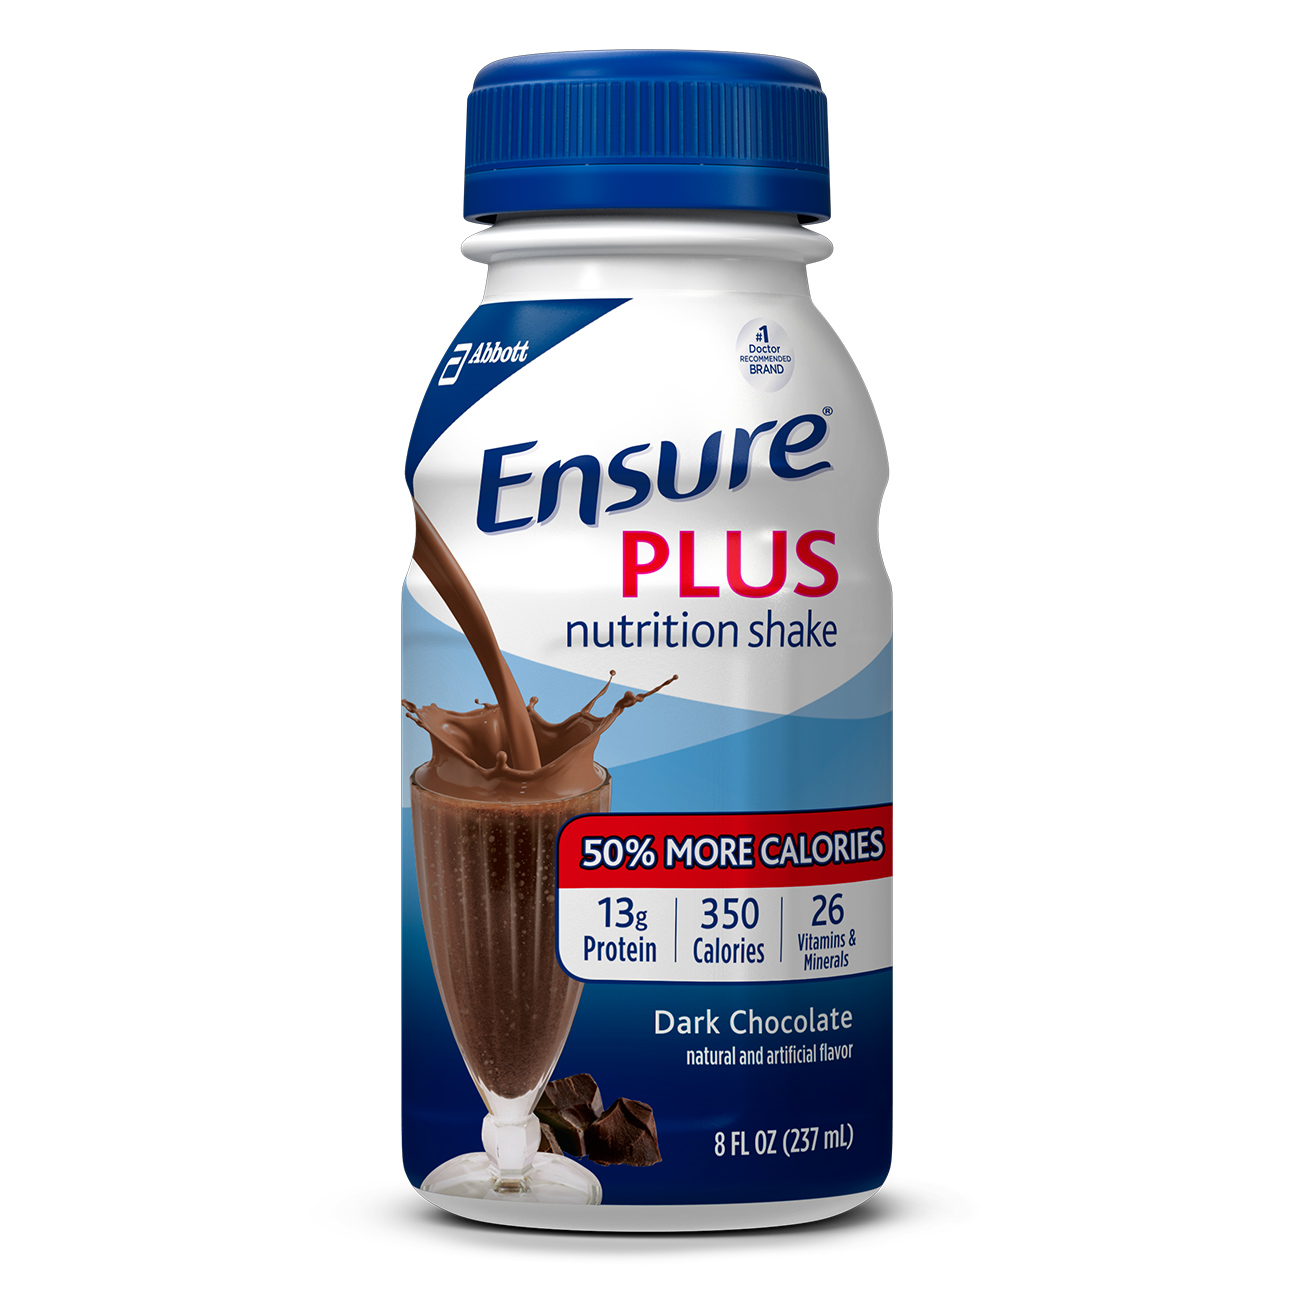 Ensure Plus Nutrition Shake with 13 grams of high-quality protein, Meal Replacement Shakes, Dark Chocolate, 8 fl oz, 6 count